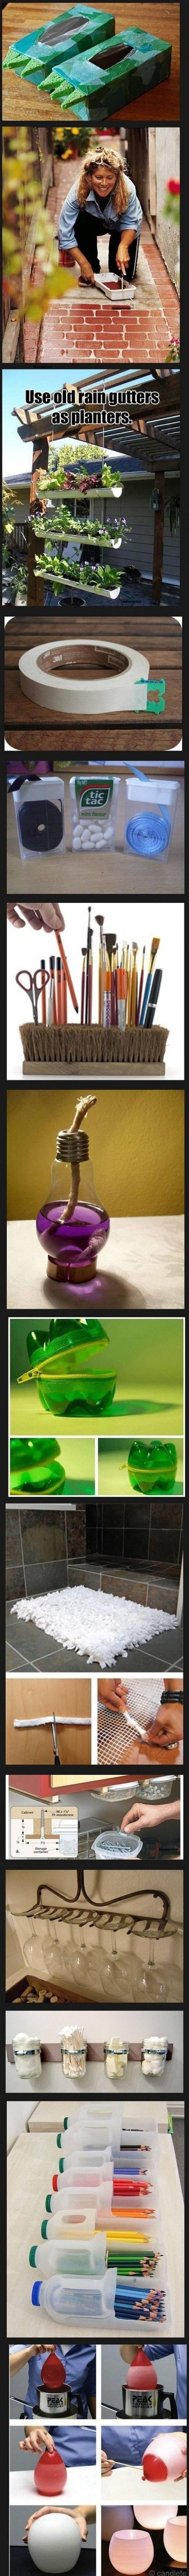 Upcycle inspiring ideas!!! #PintoWin #EarthDay pin to win a Bodhi Tree Talisman from www.jewelryforacause.net